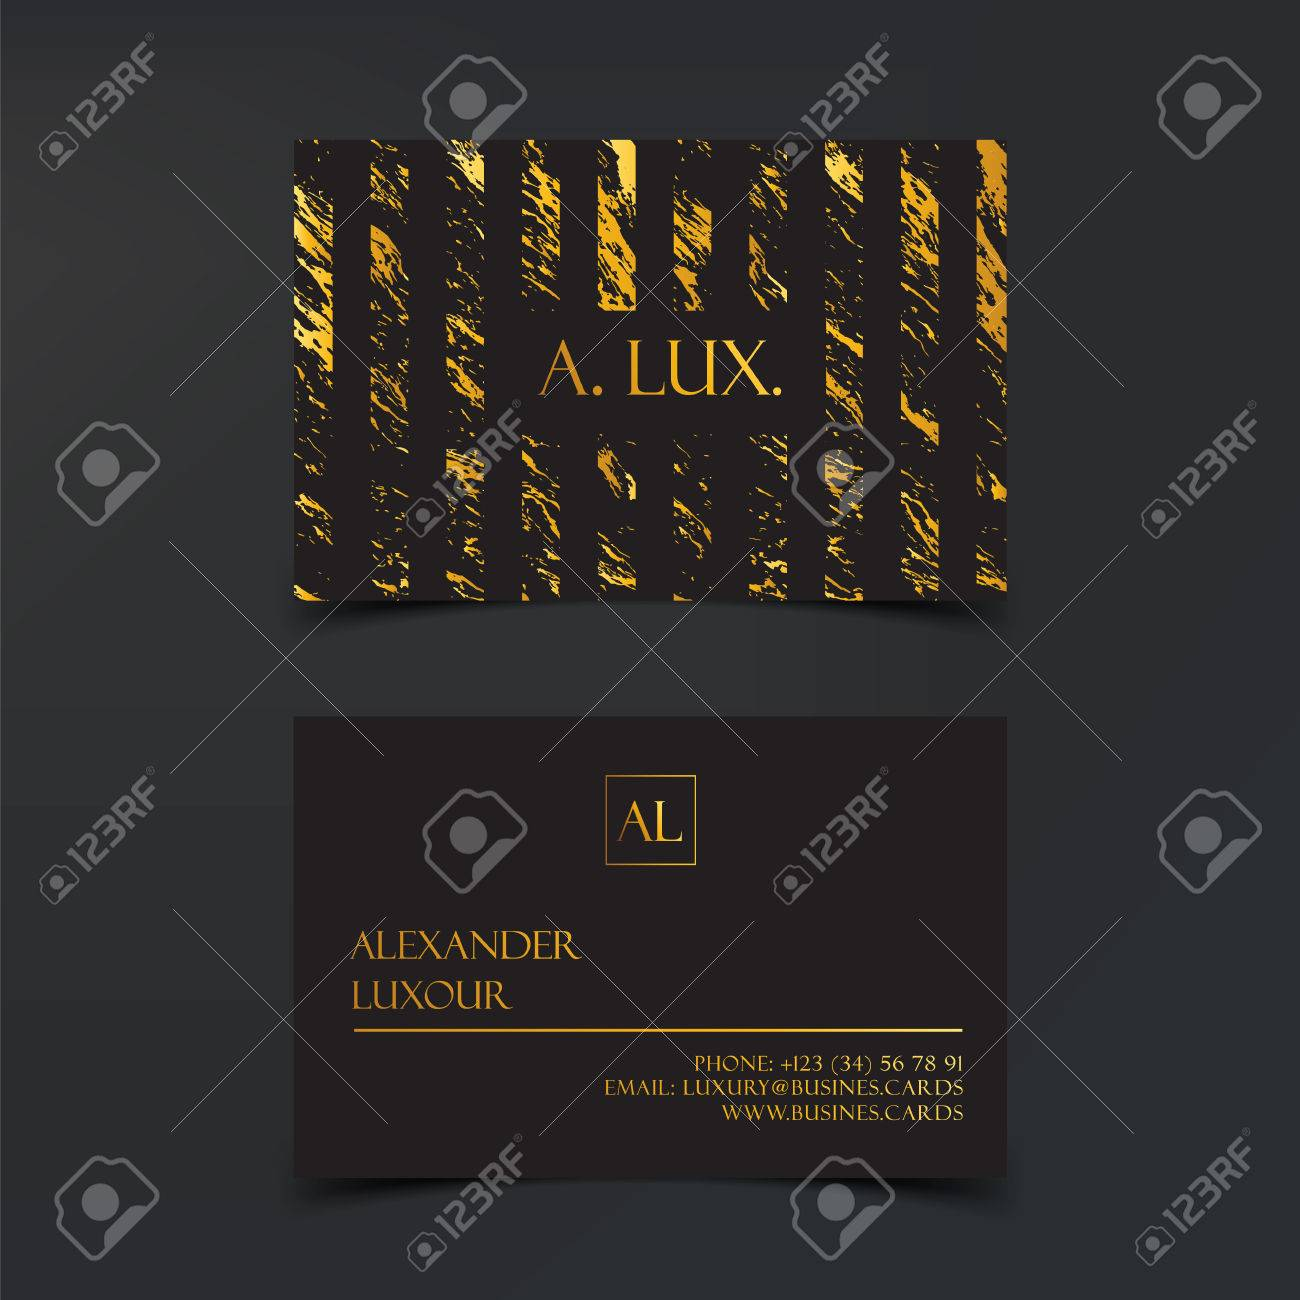 Fashion Elegant Black Luxury Business Cards With Marble Texture ...